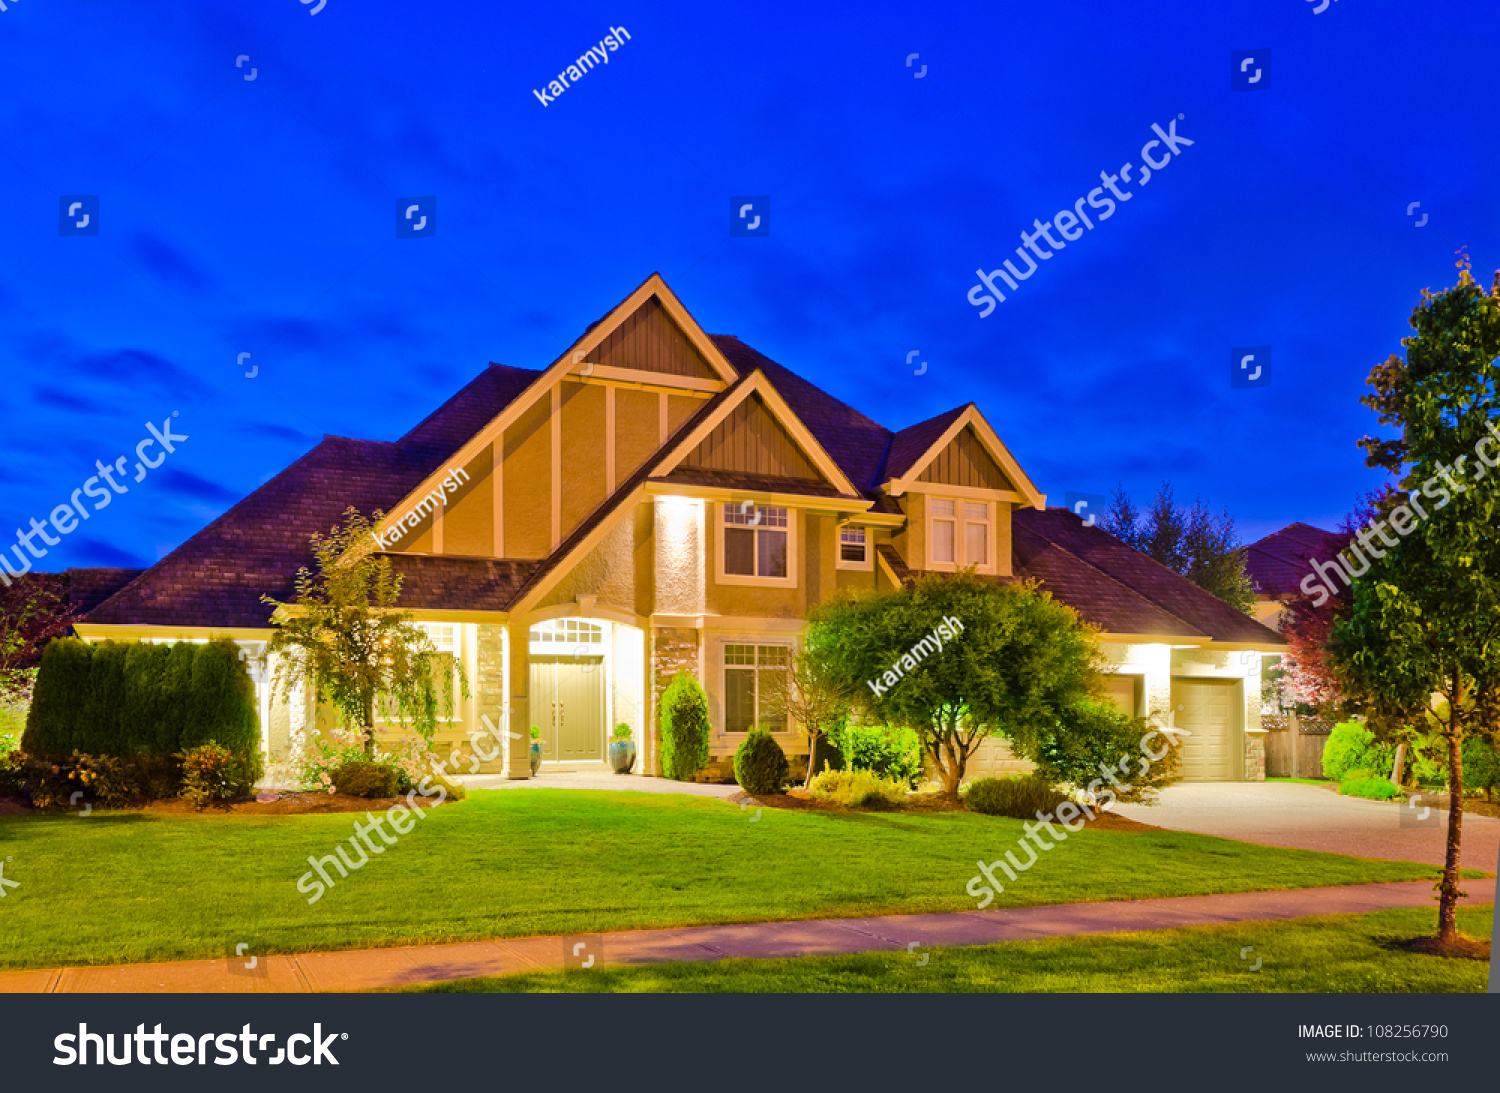 Luxury House At Night In Vancouver Canada Stock Photo 108256790